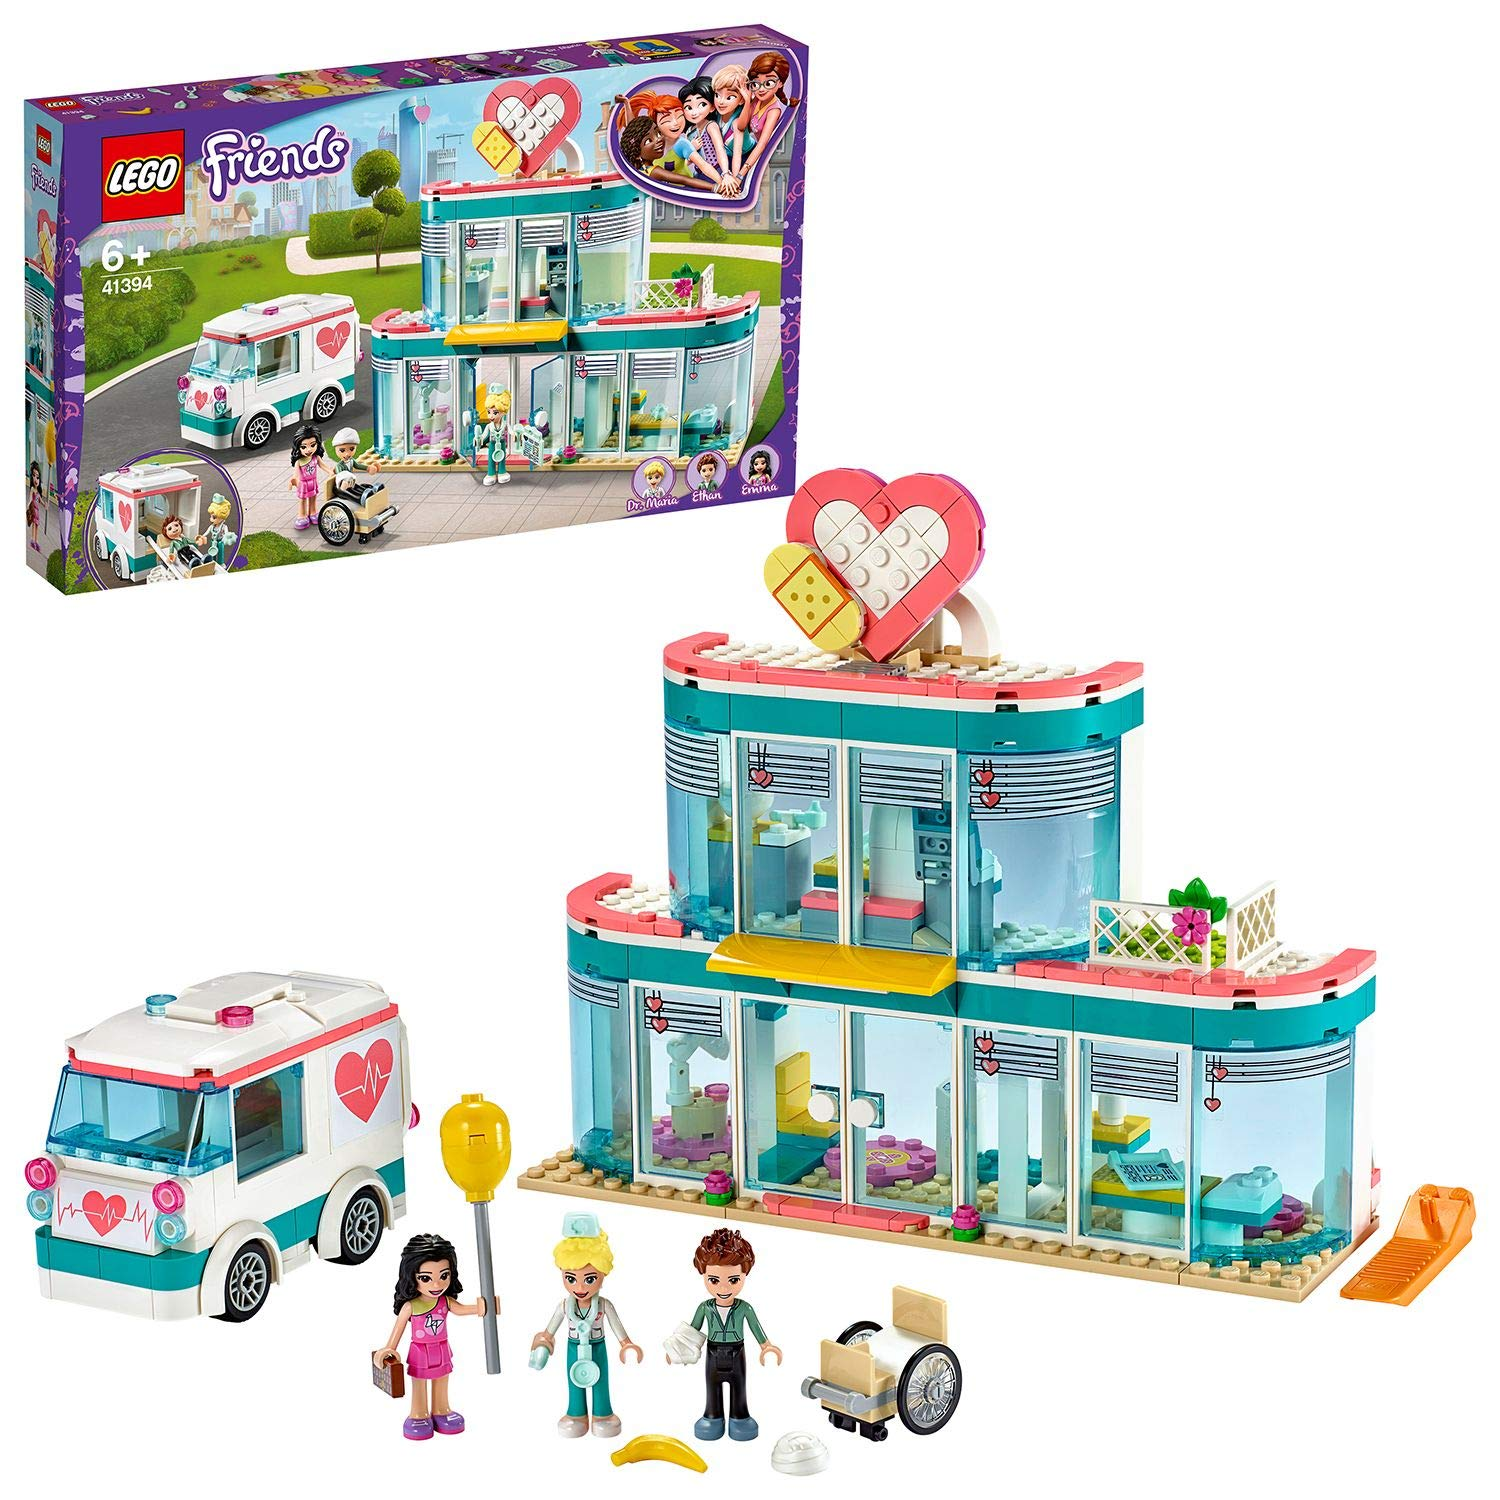 LEGO 41394 Friends Heartlake City Hospital Playset with Emma and 2 Other Mini Dolls, for Girls and Boys 6+